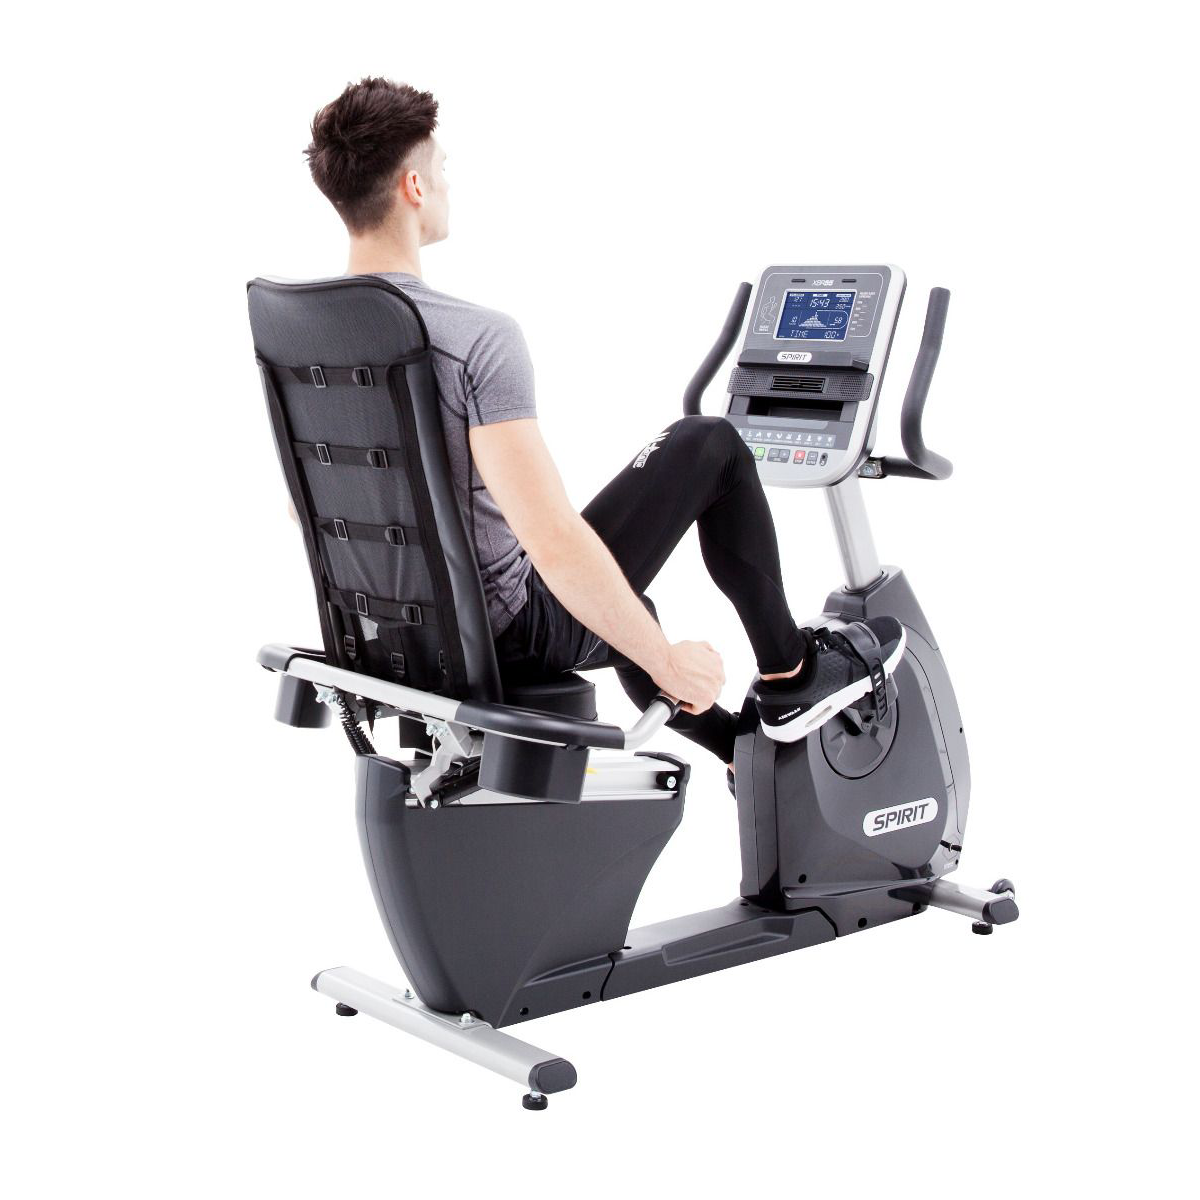 View from back/right of Spirit Fitness XE795 Recumbent Bike Trainer featuring a female model exercising while wearing a black sports bra and black shorts.